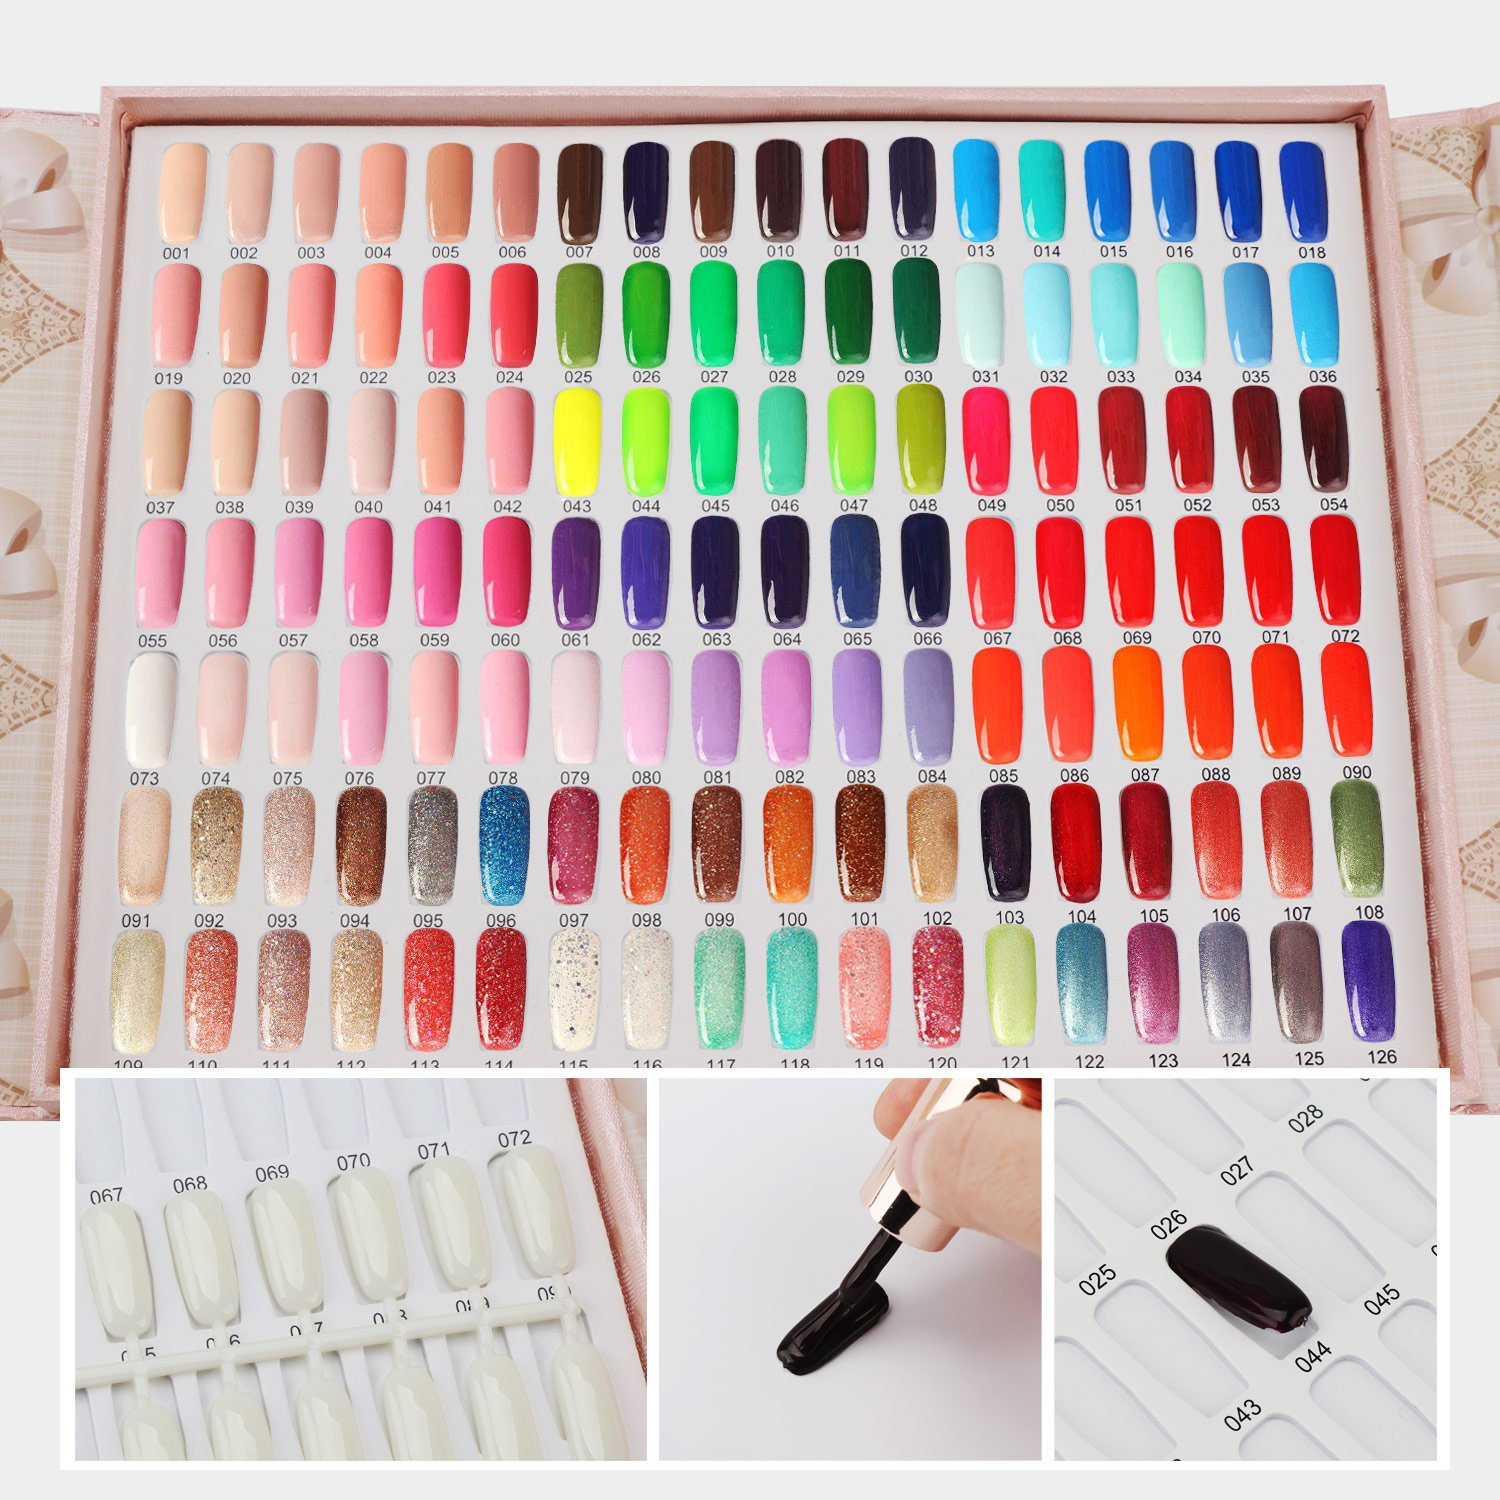 Segbeauty 126 Colors Nail Polish Colors Chart with 144 False Nail Tips, Nail Gel Polish Display Card...